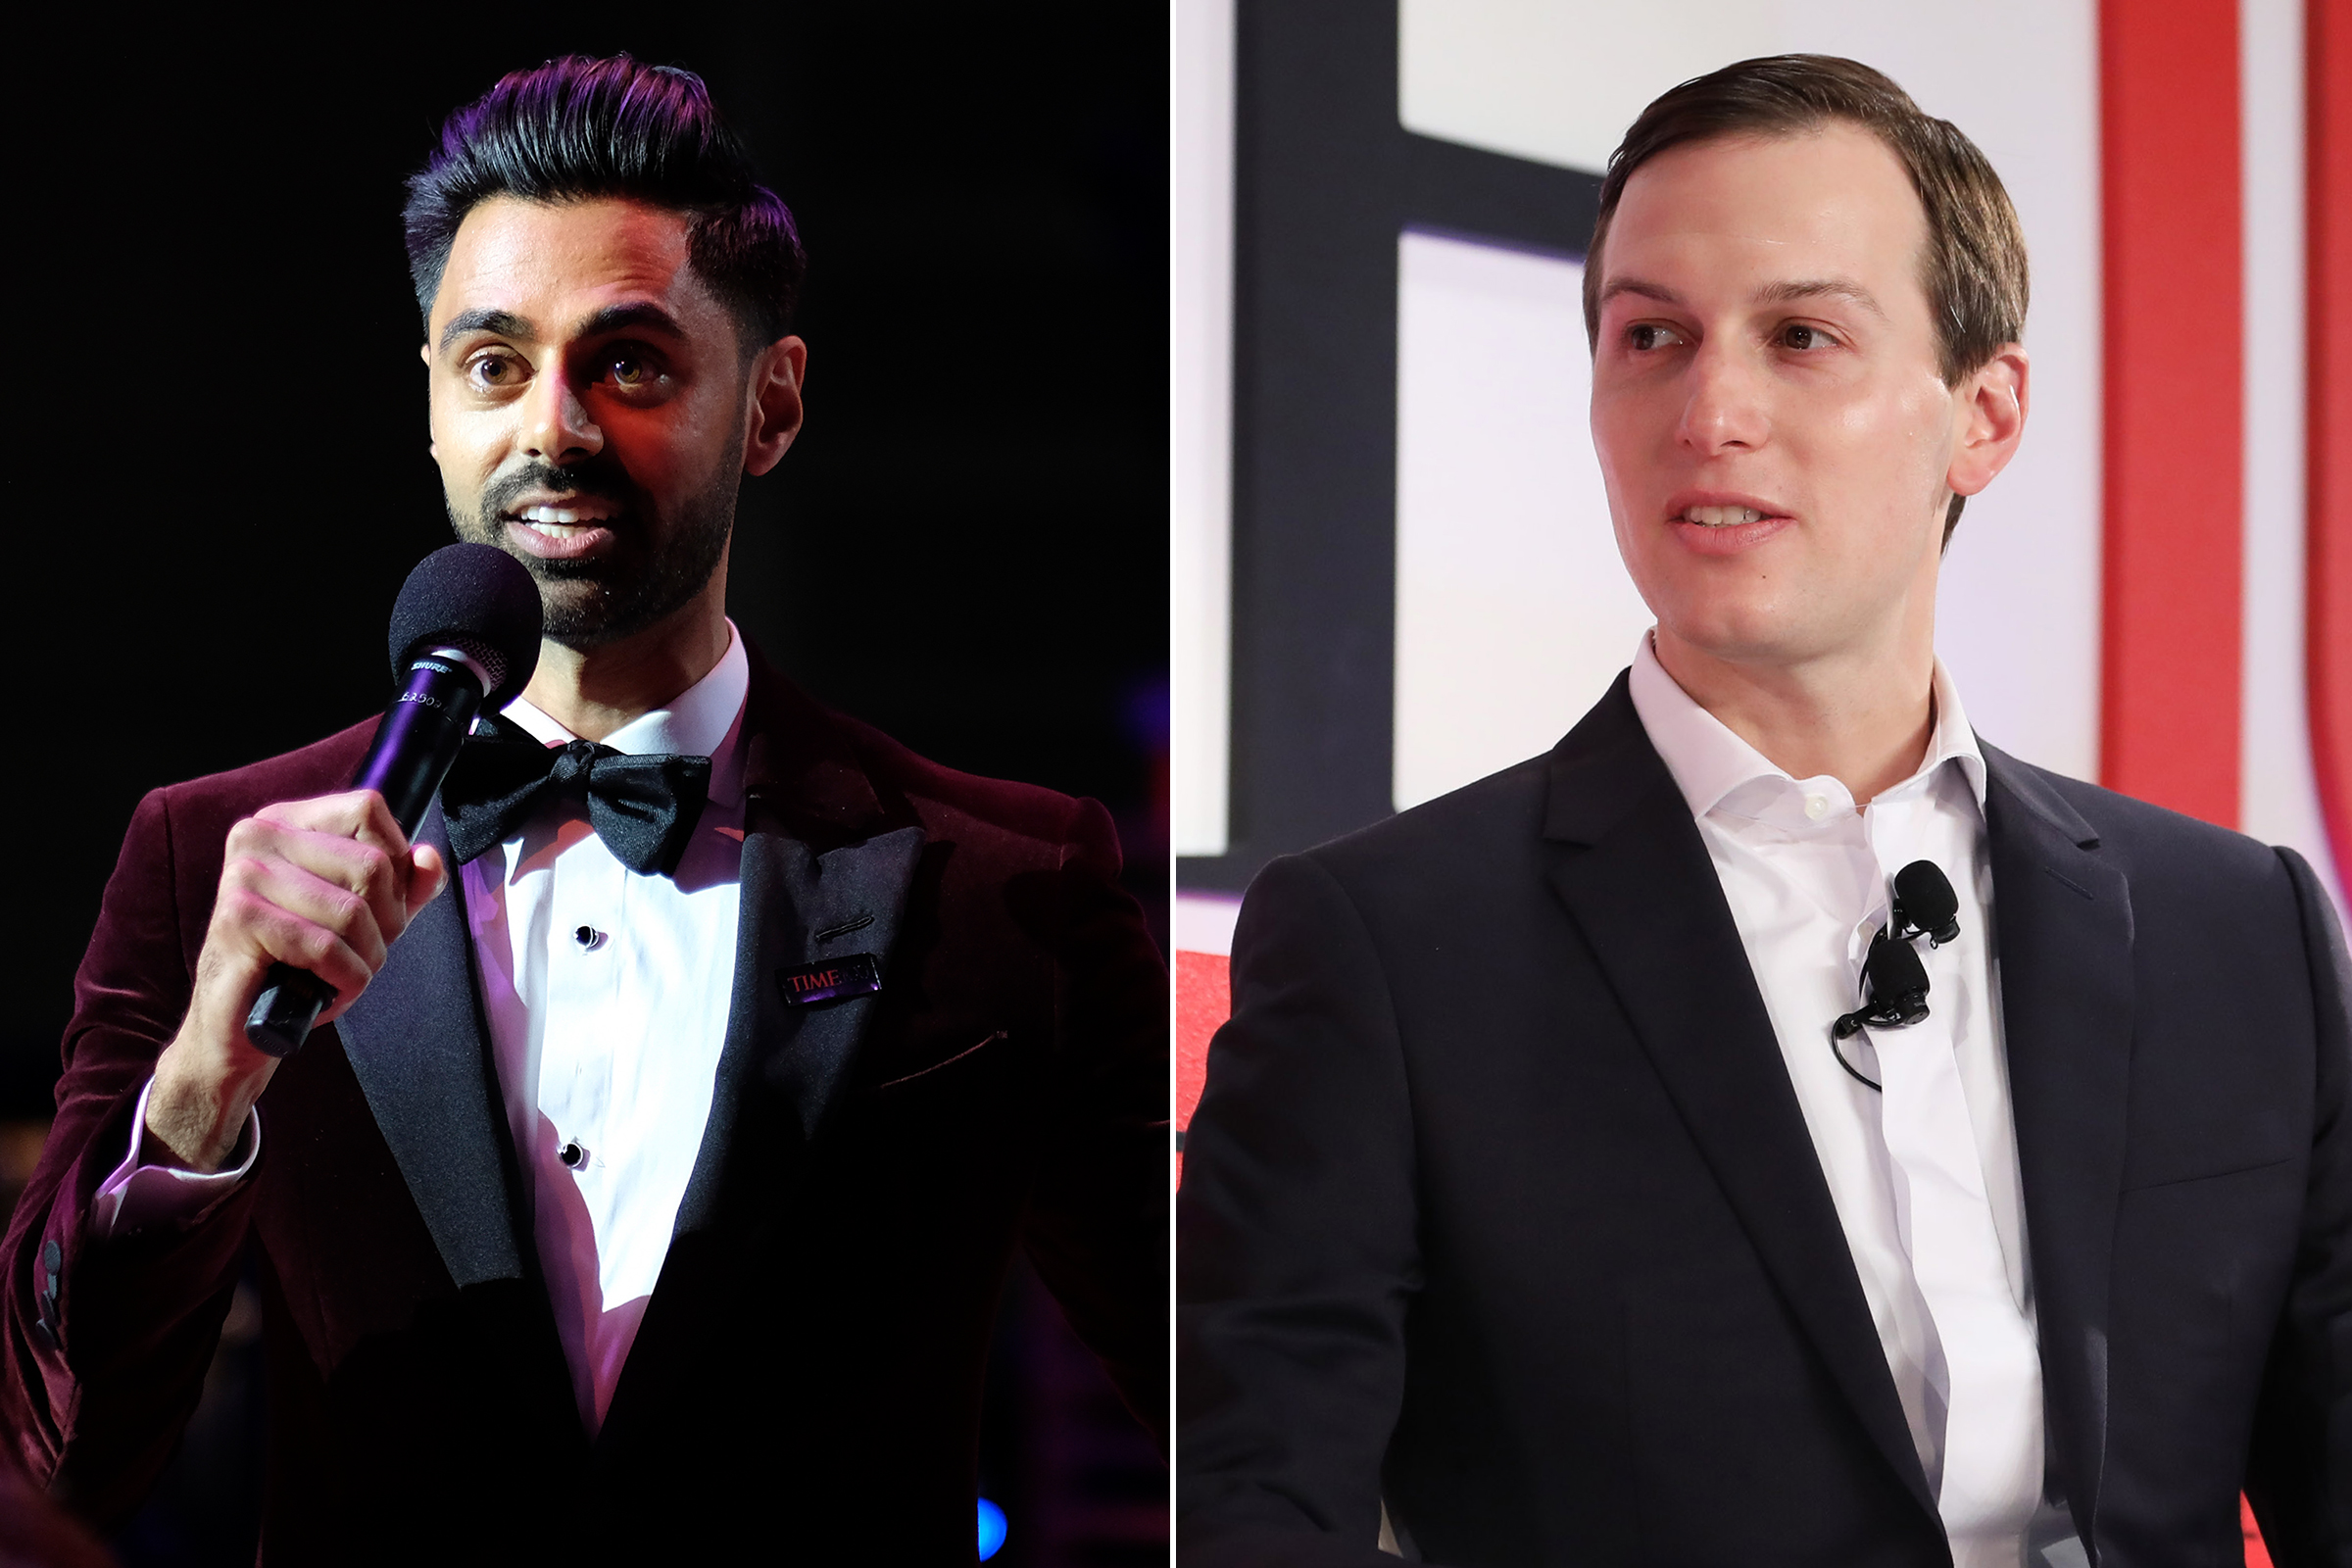 Hasan Minaj at the at the Time 100 Gala and Jared Kushner at the Time 100 Summit in New York City on April 23, 2019.